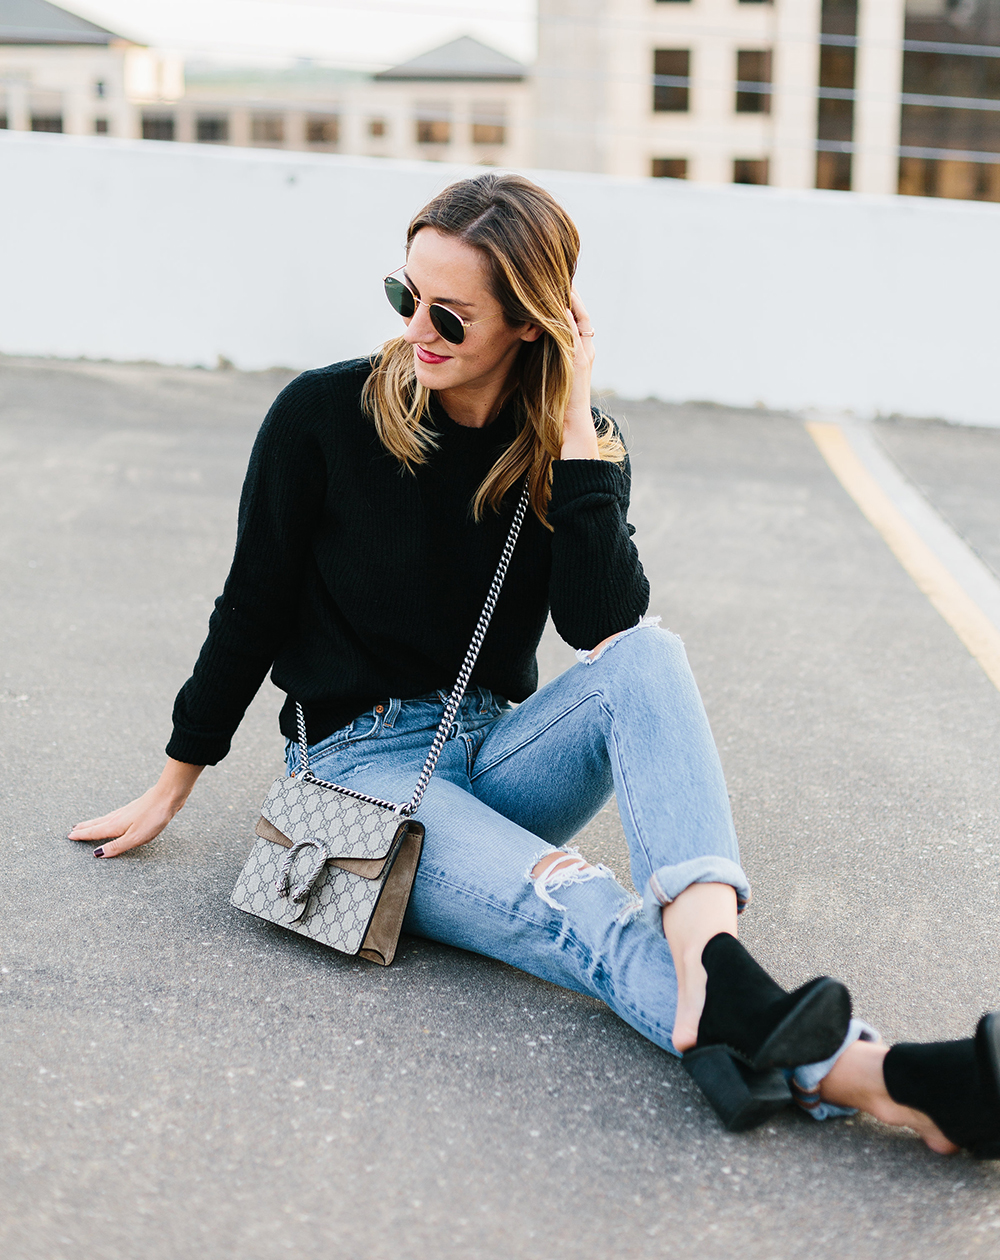 livvyland-blog-olivia-watson-topshop-black-knit-sweater-cozy-slip-on-black-boho-mules-levis-501-3